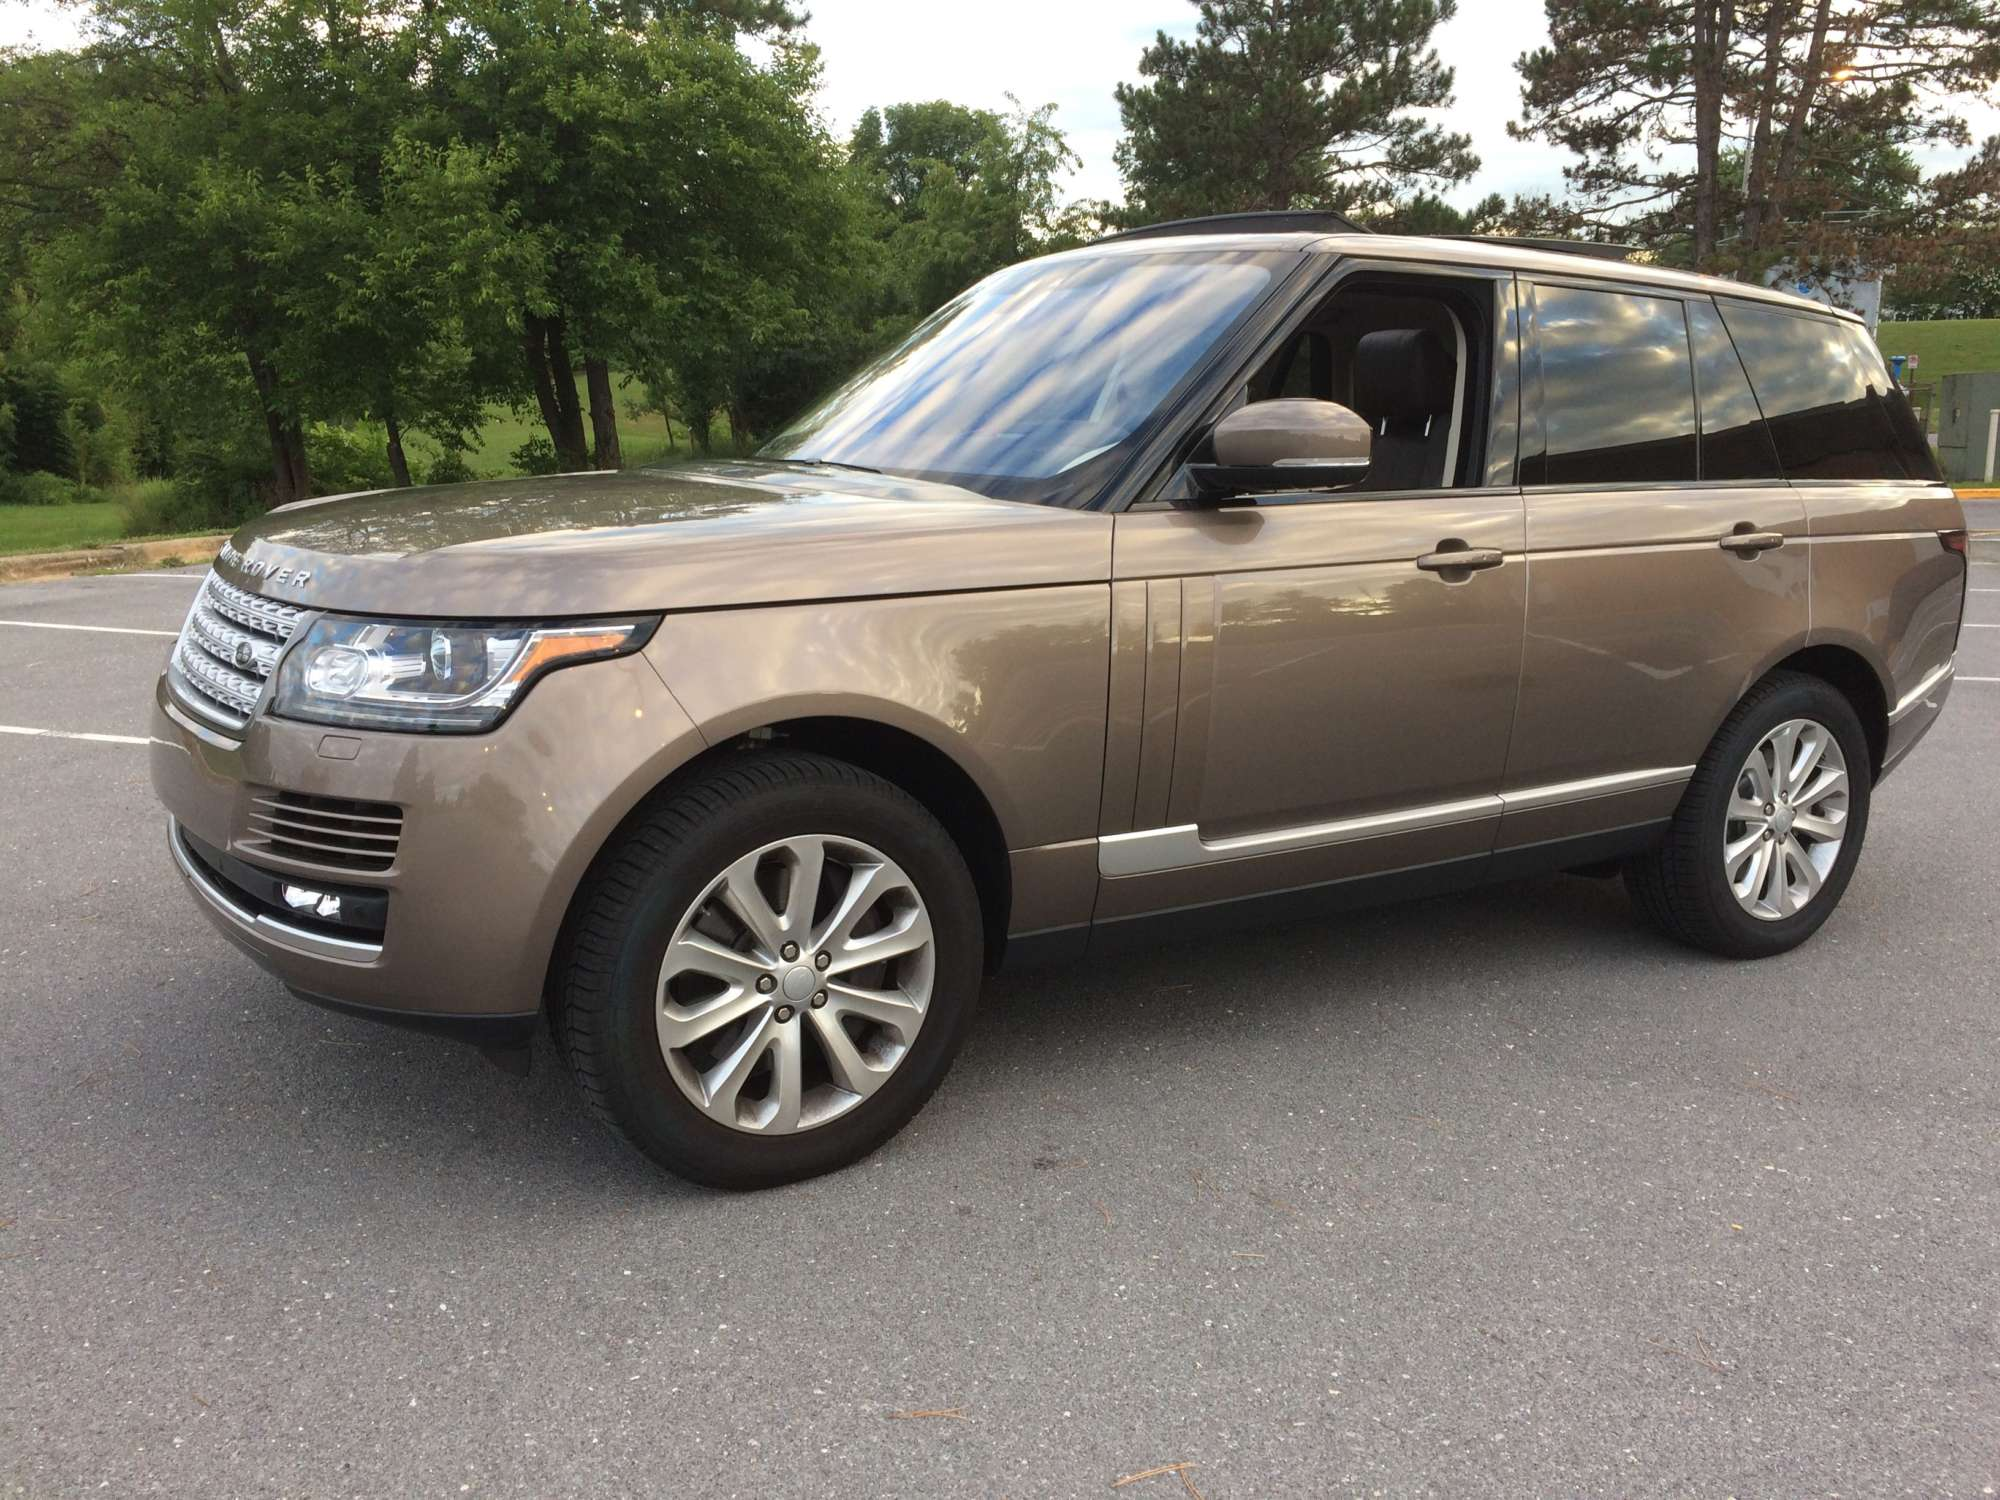 Upscale Range Rover HSE fortably takes you anywhere for a price